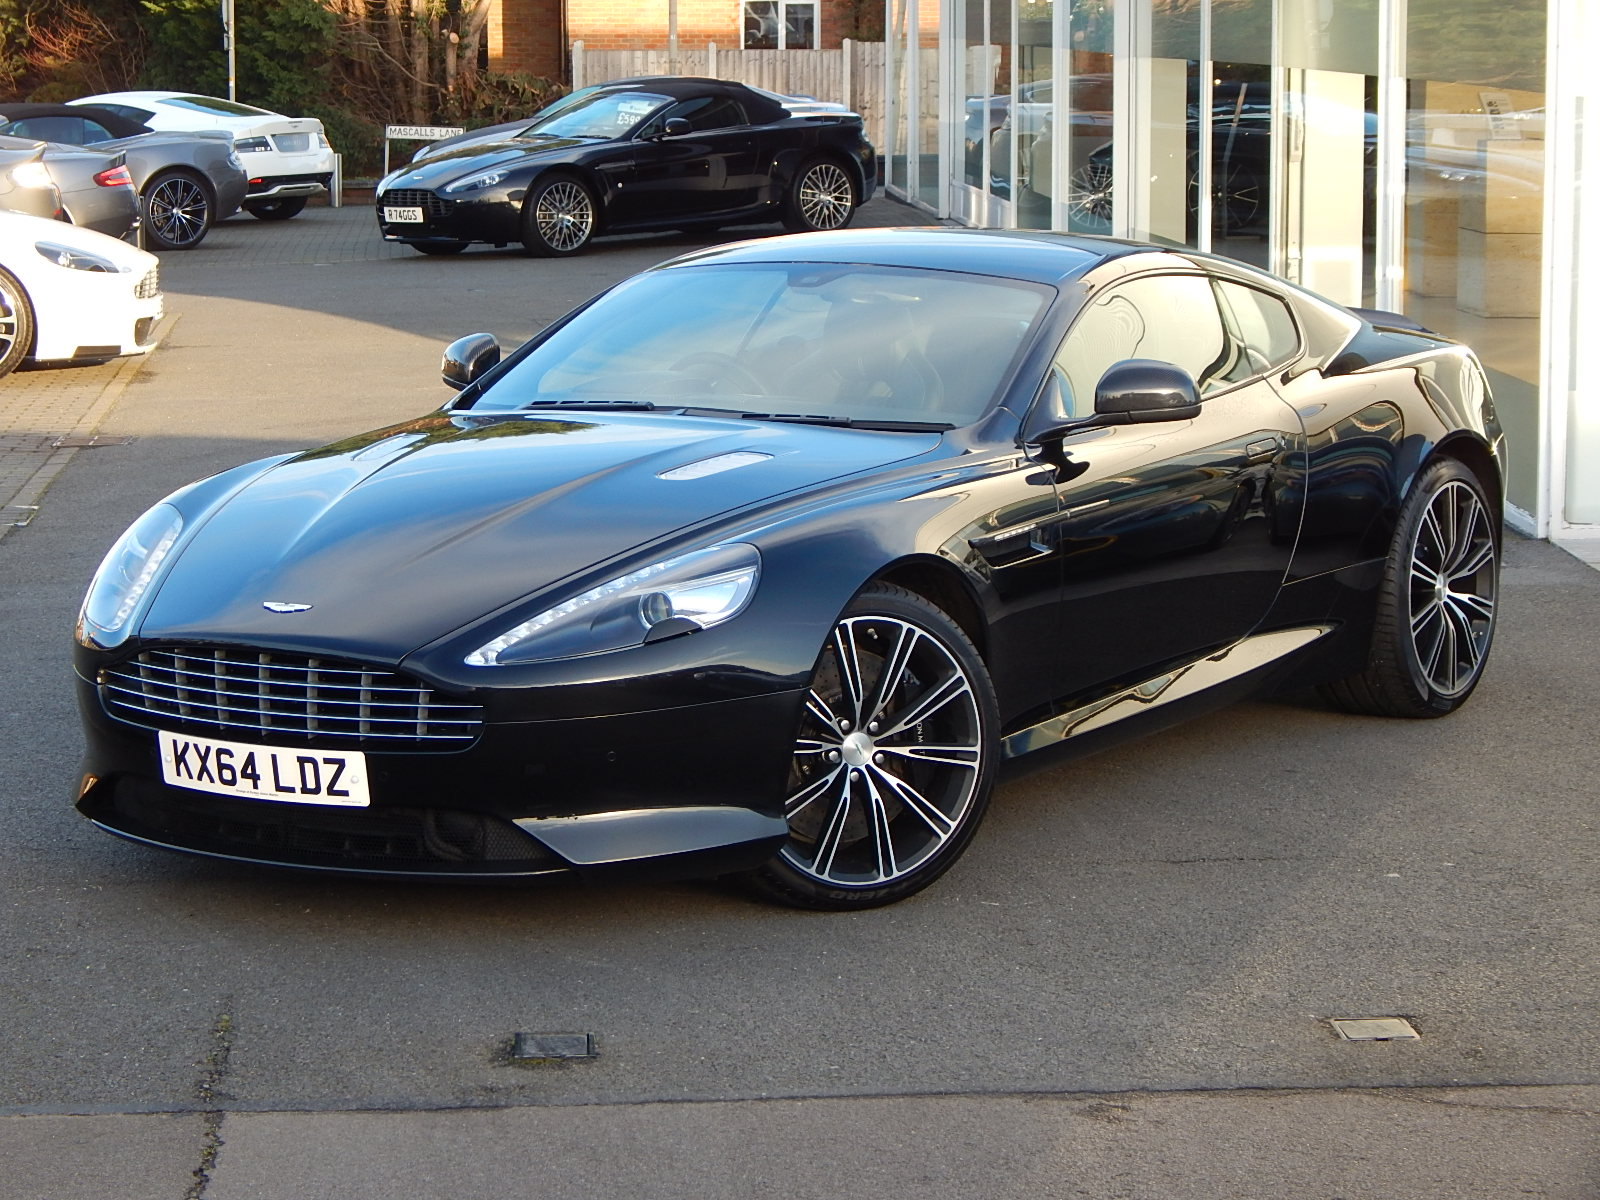 Aston Martin DB9 V12 2dr Touchtronic, Carbon Edition image 5